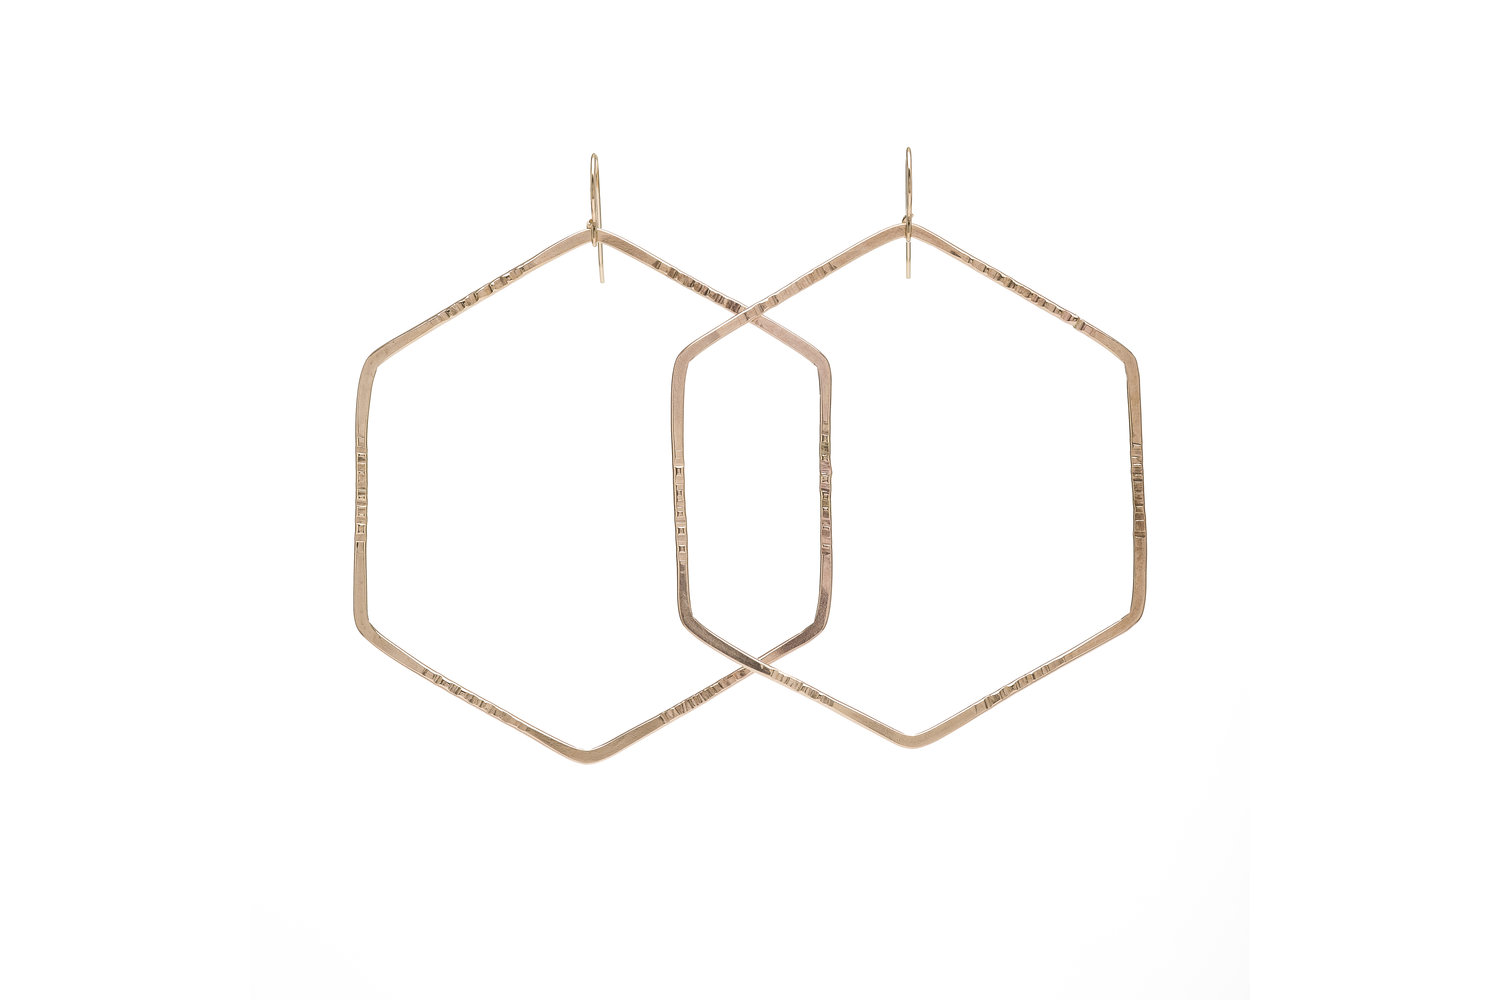 Hexagon Hoops - Geometric shapes, like hexagons, consistently play a large role in Kenda Kist Jewelry.